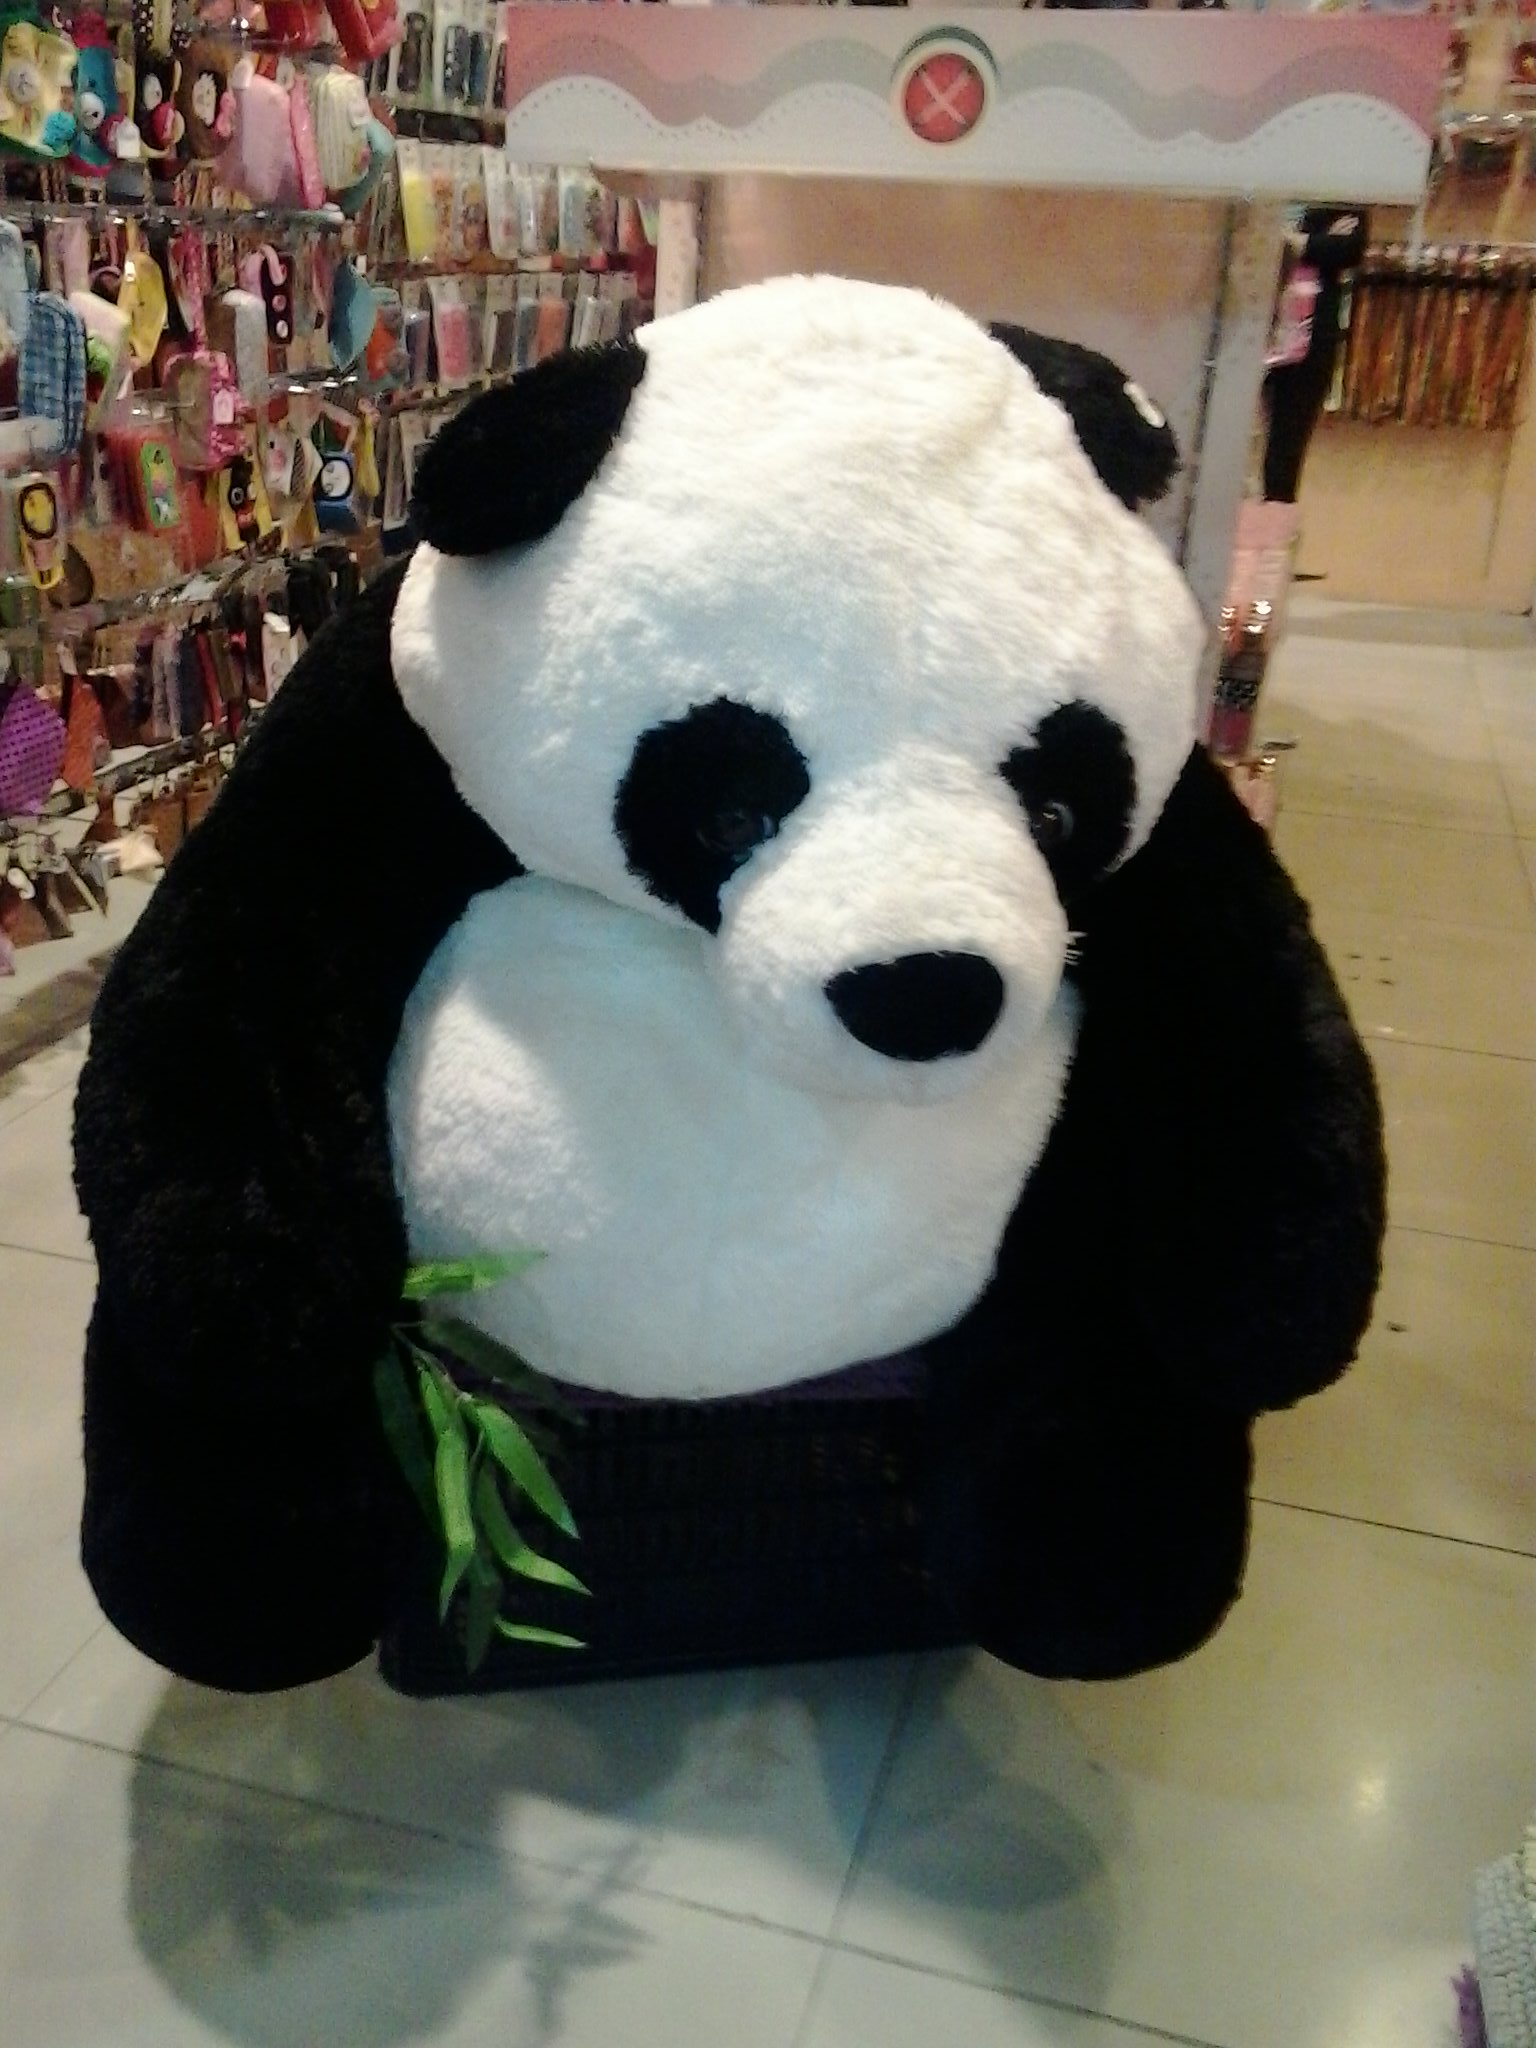 Big panda stuffed animal photo